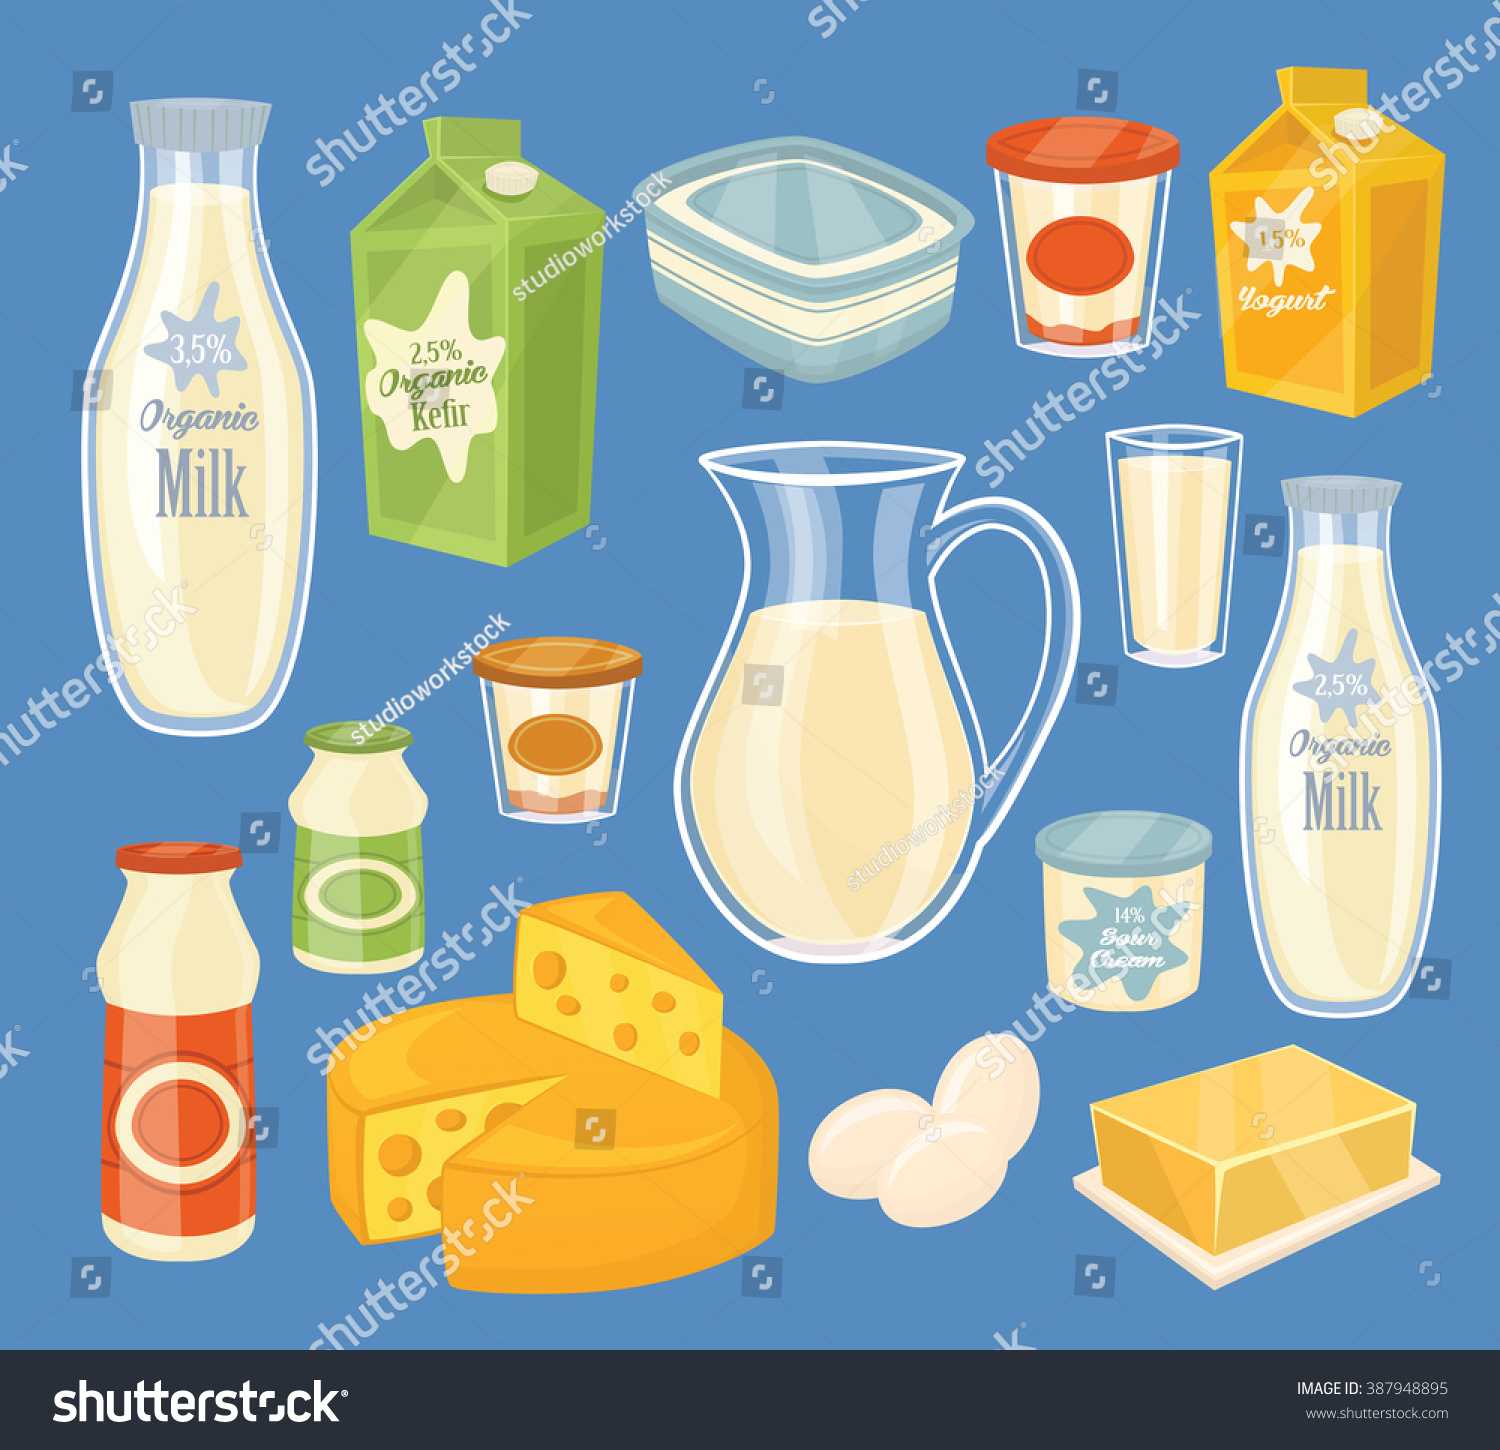 A dairy product